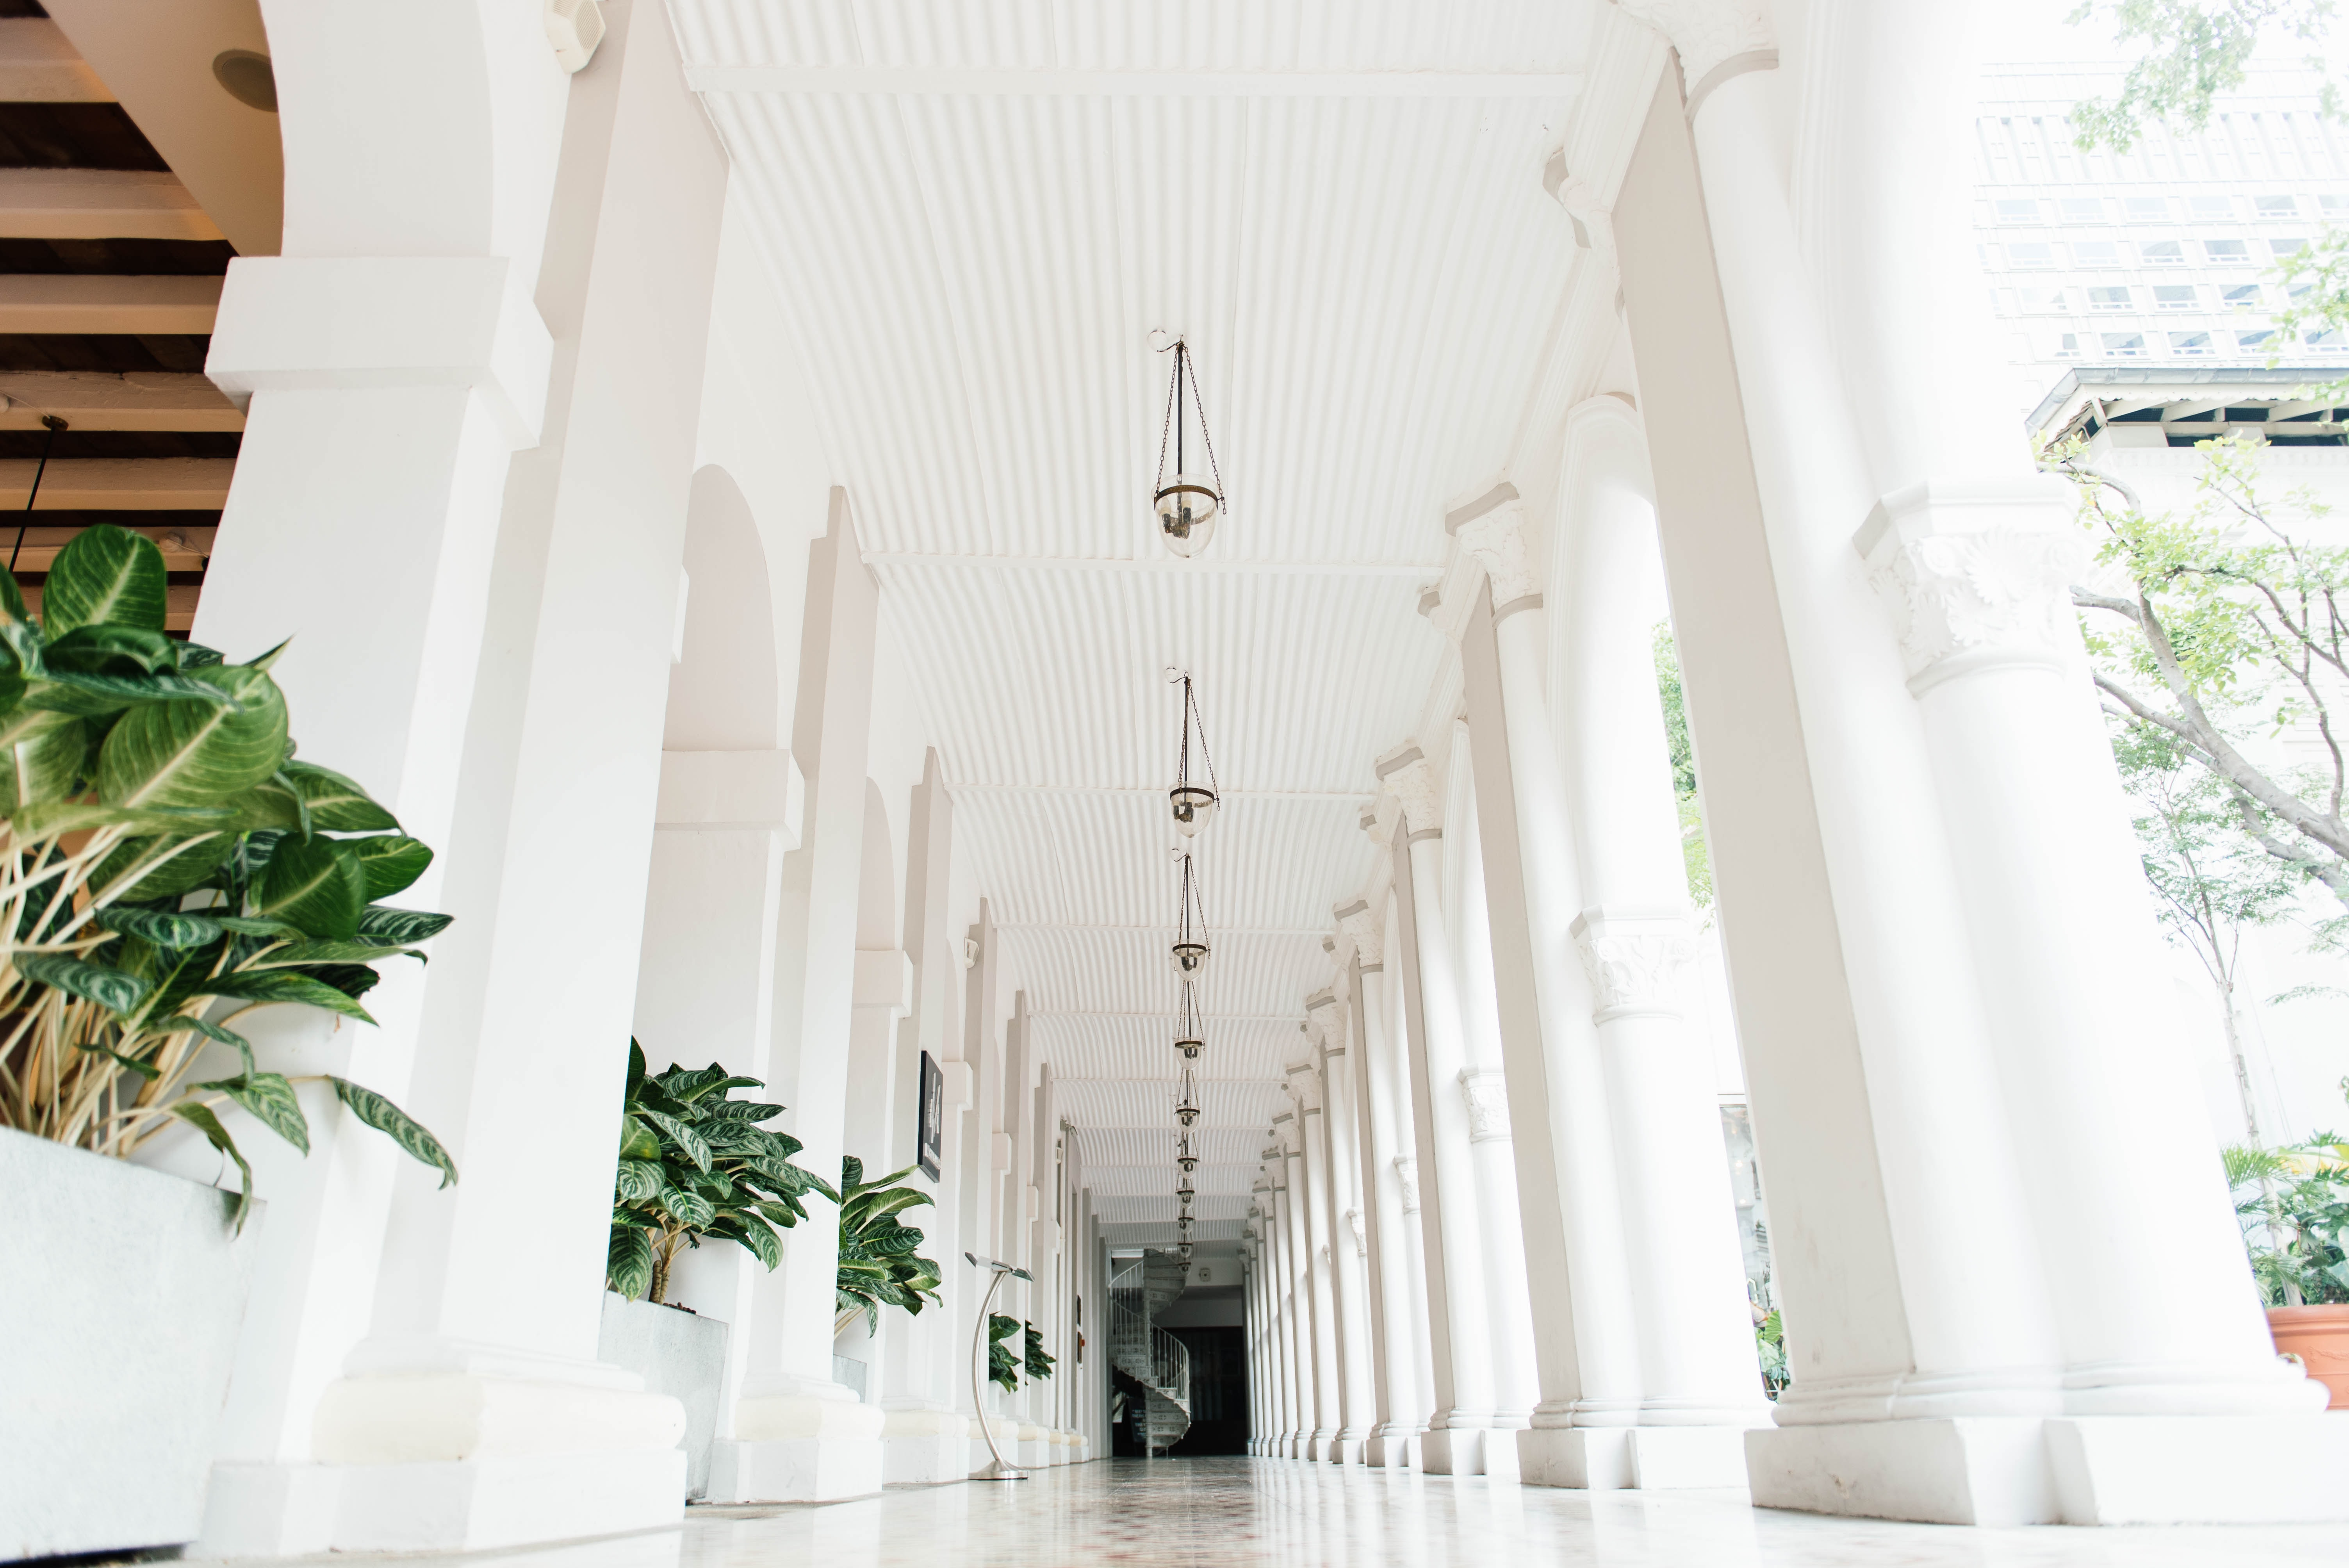 white ceramic tiles on hallway with pillars